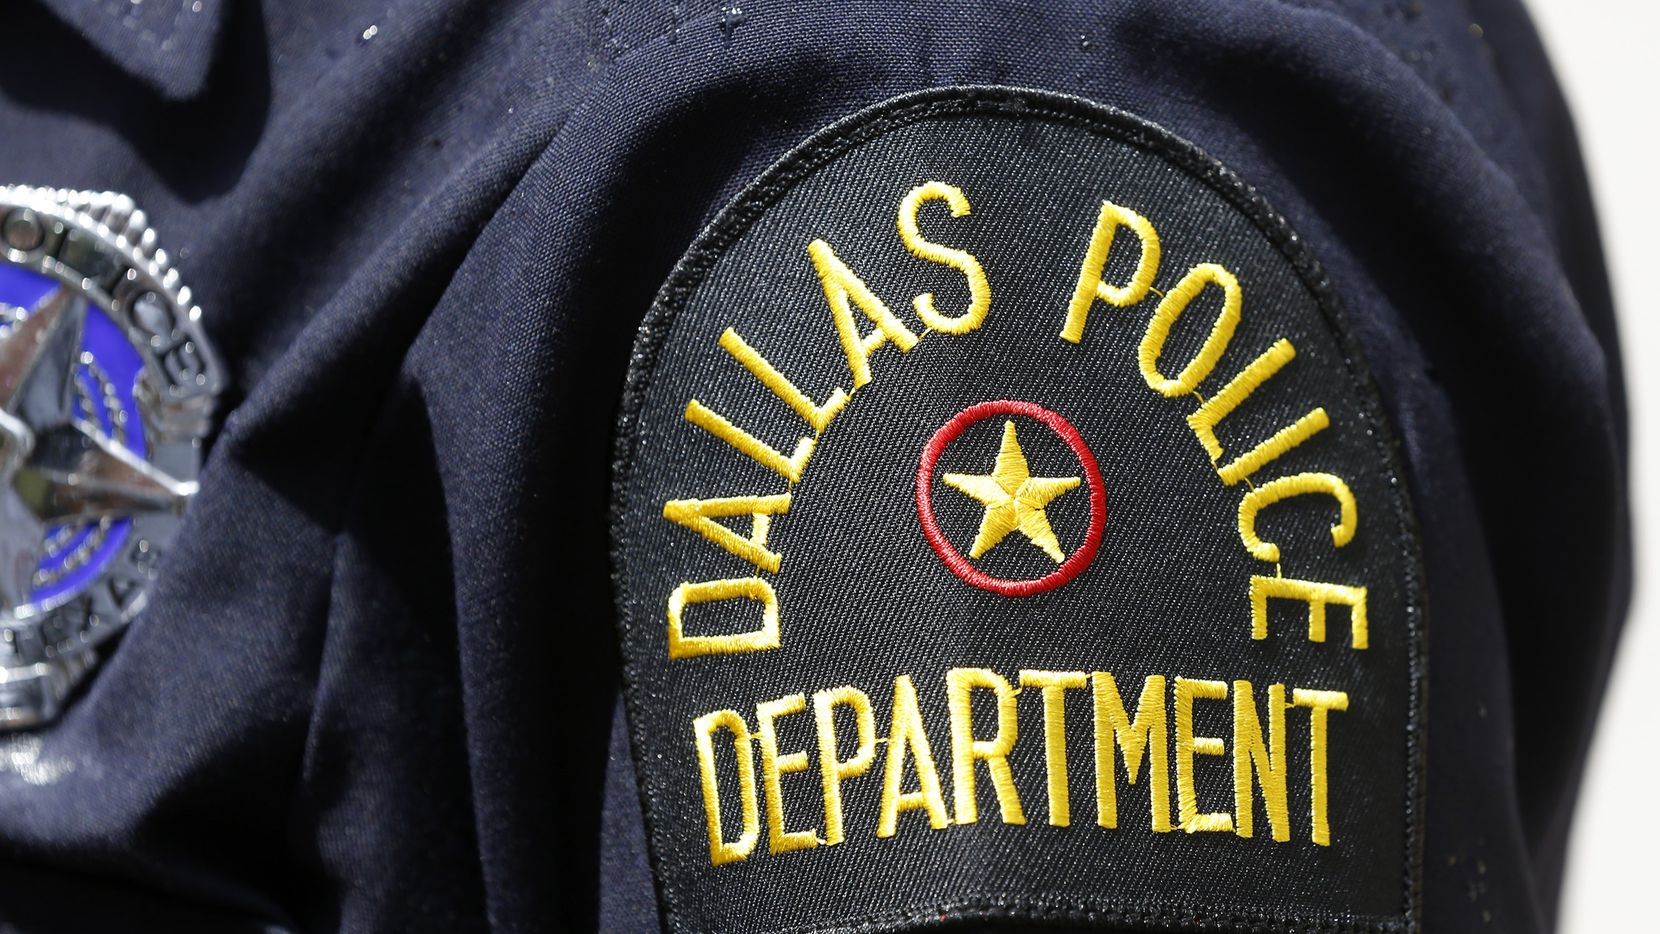 Two Dallas police officers were fired Thursday following investigations into criminal allegations.